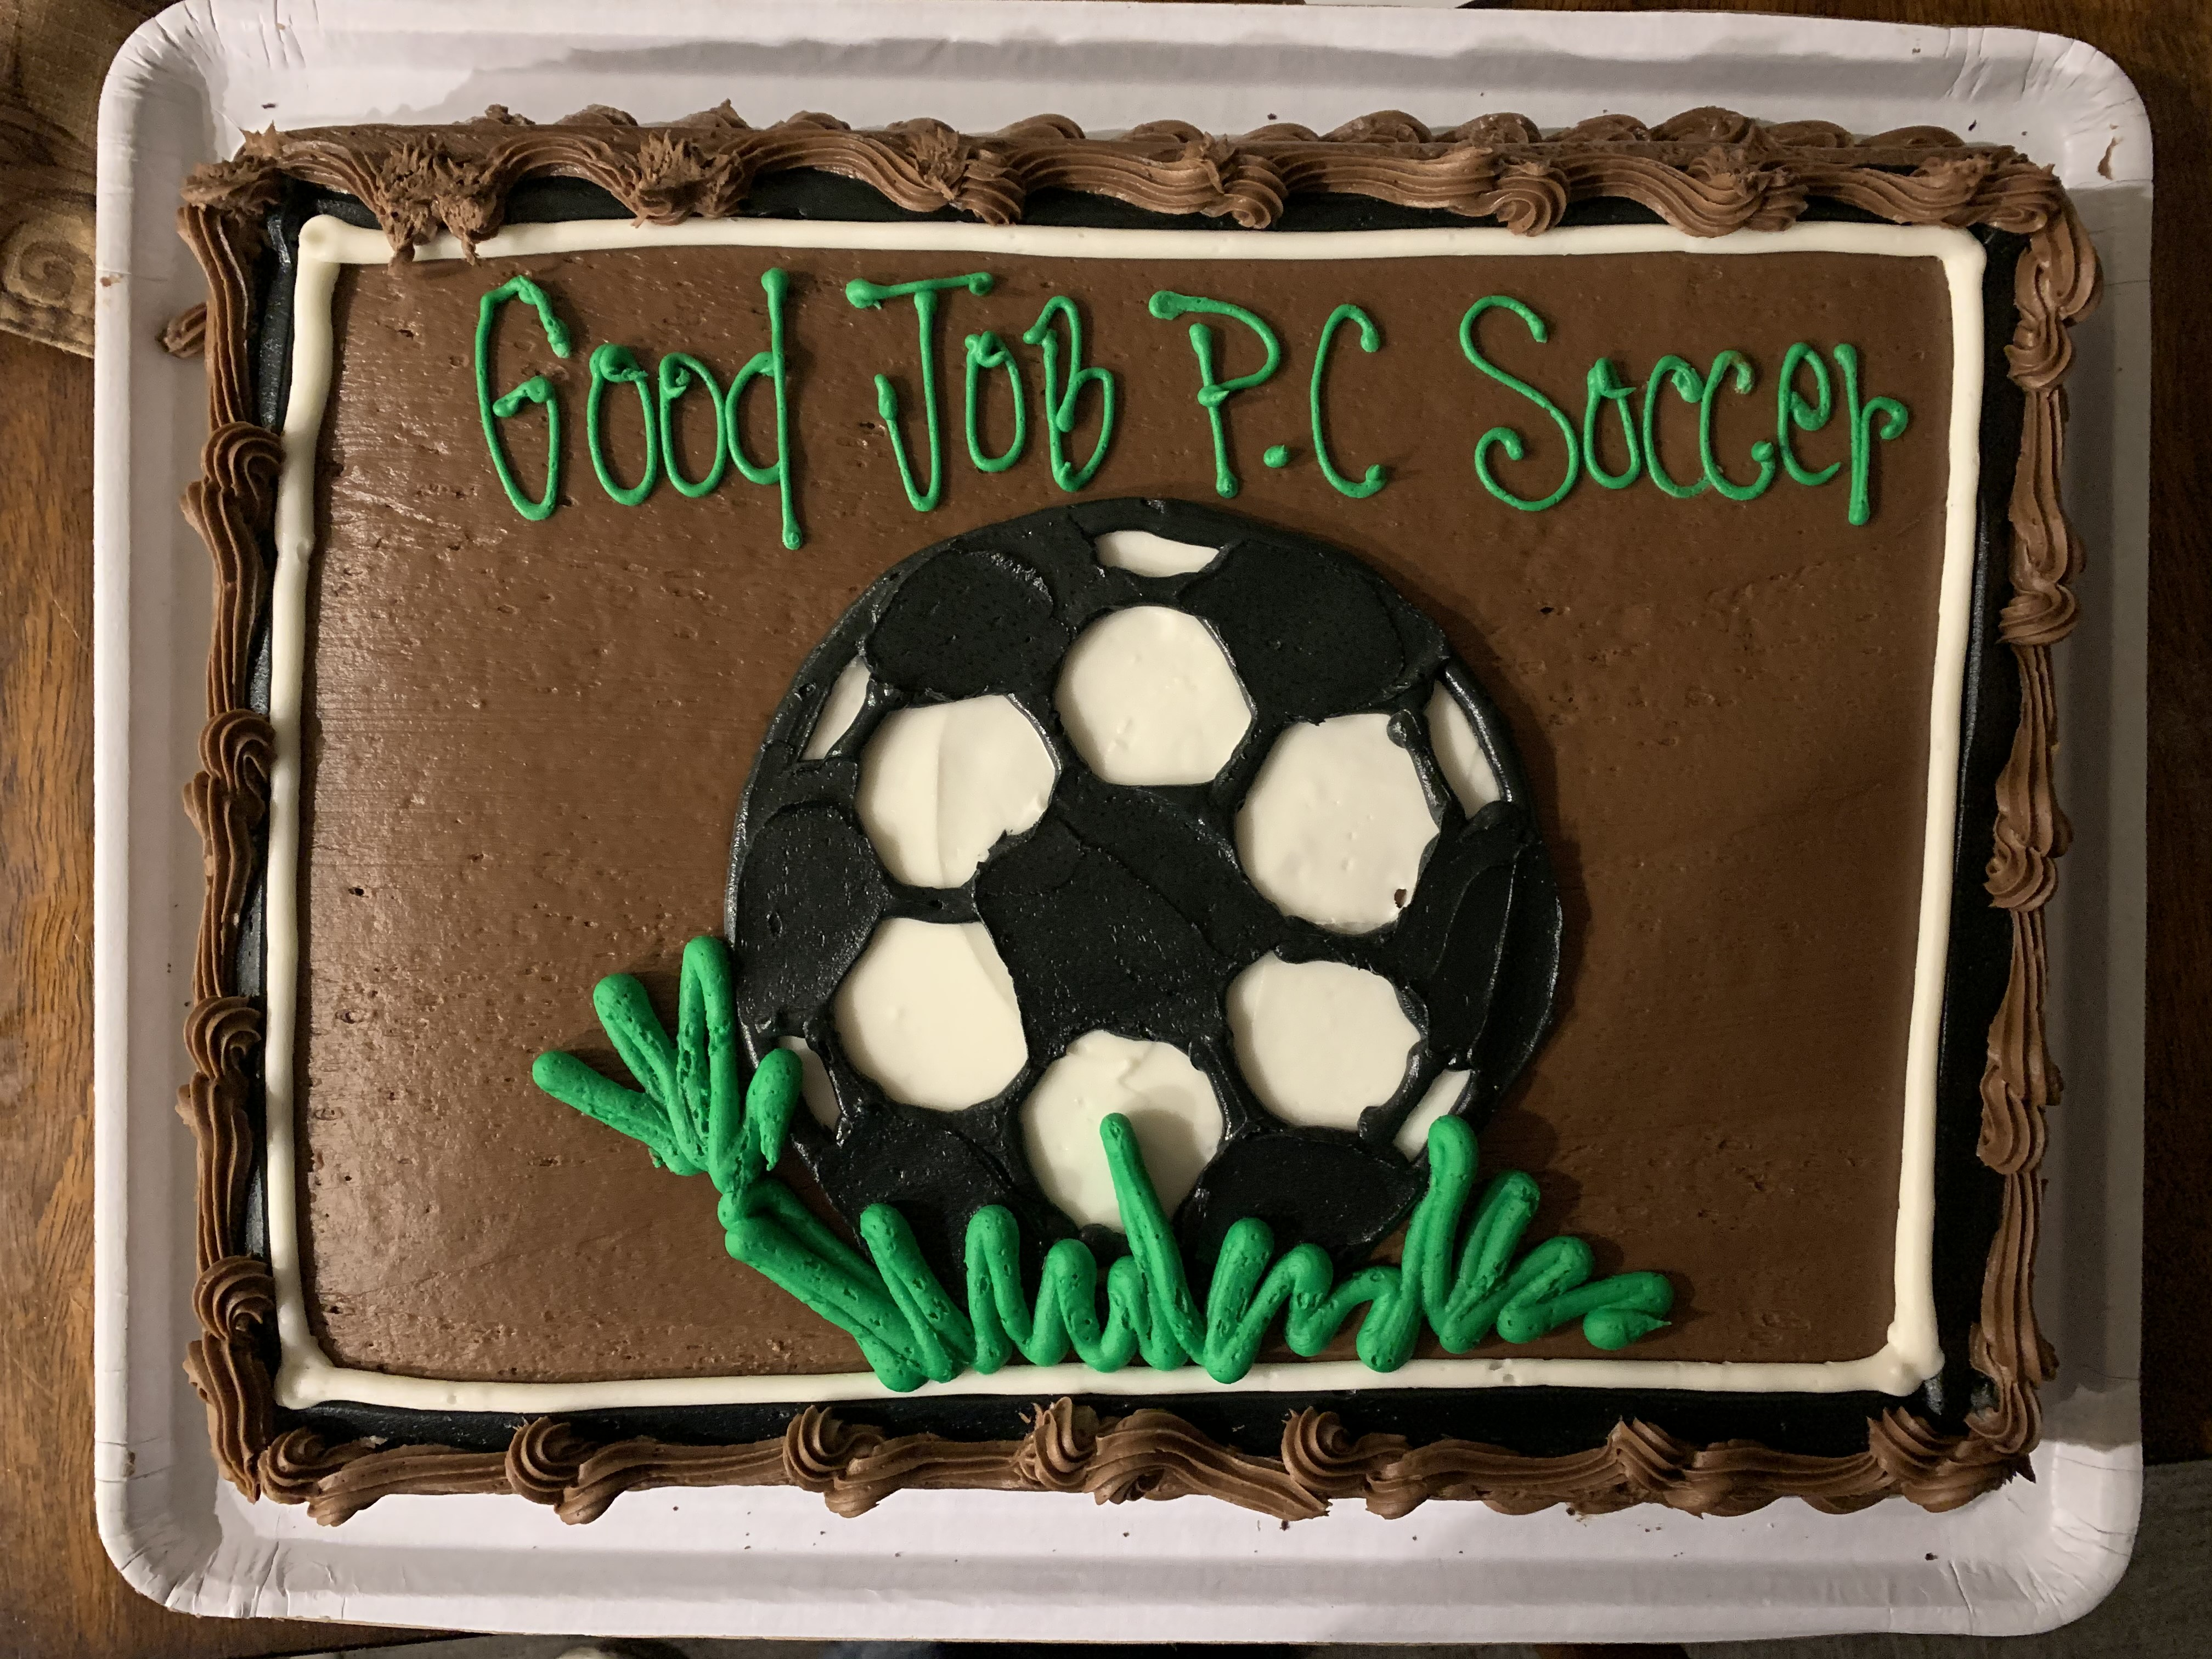 The Victory Cake: 'Good Job P.C. Soccer'